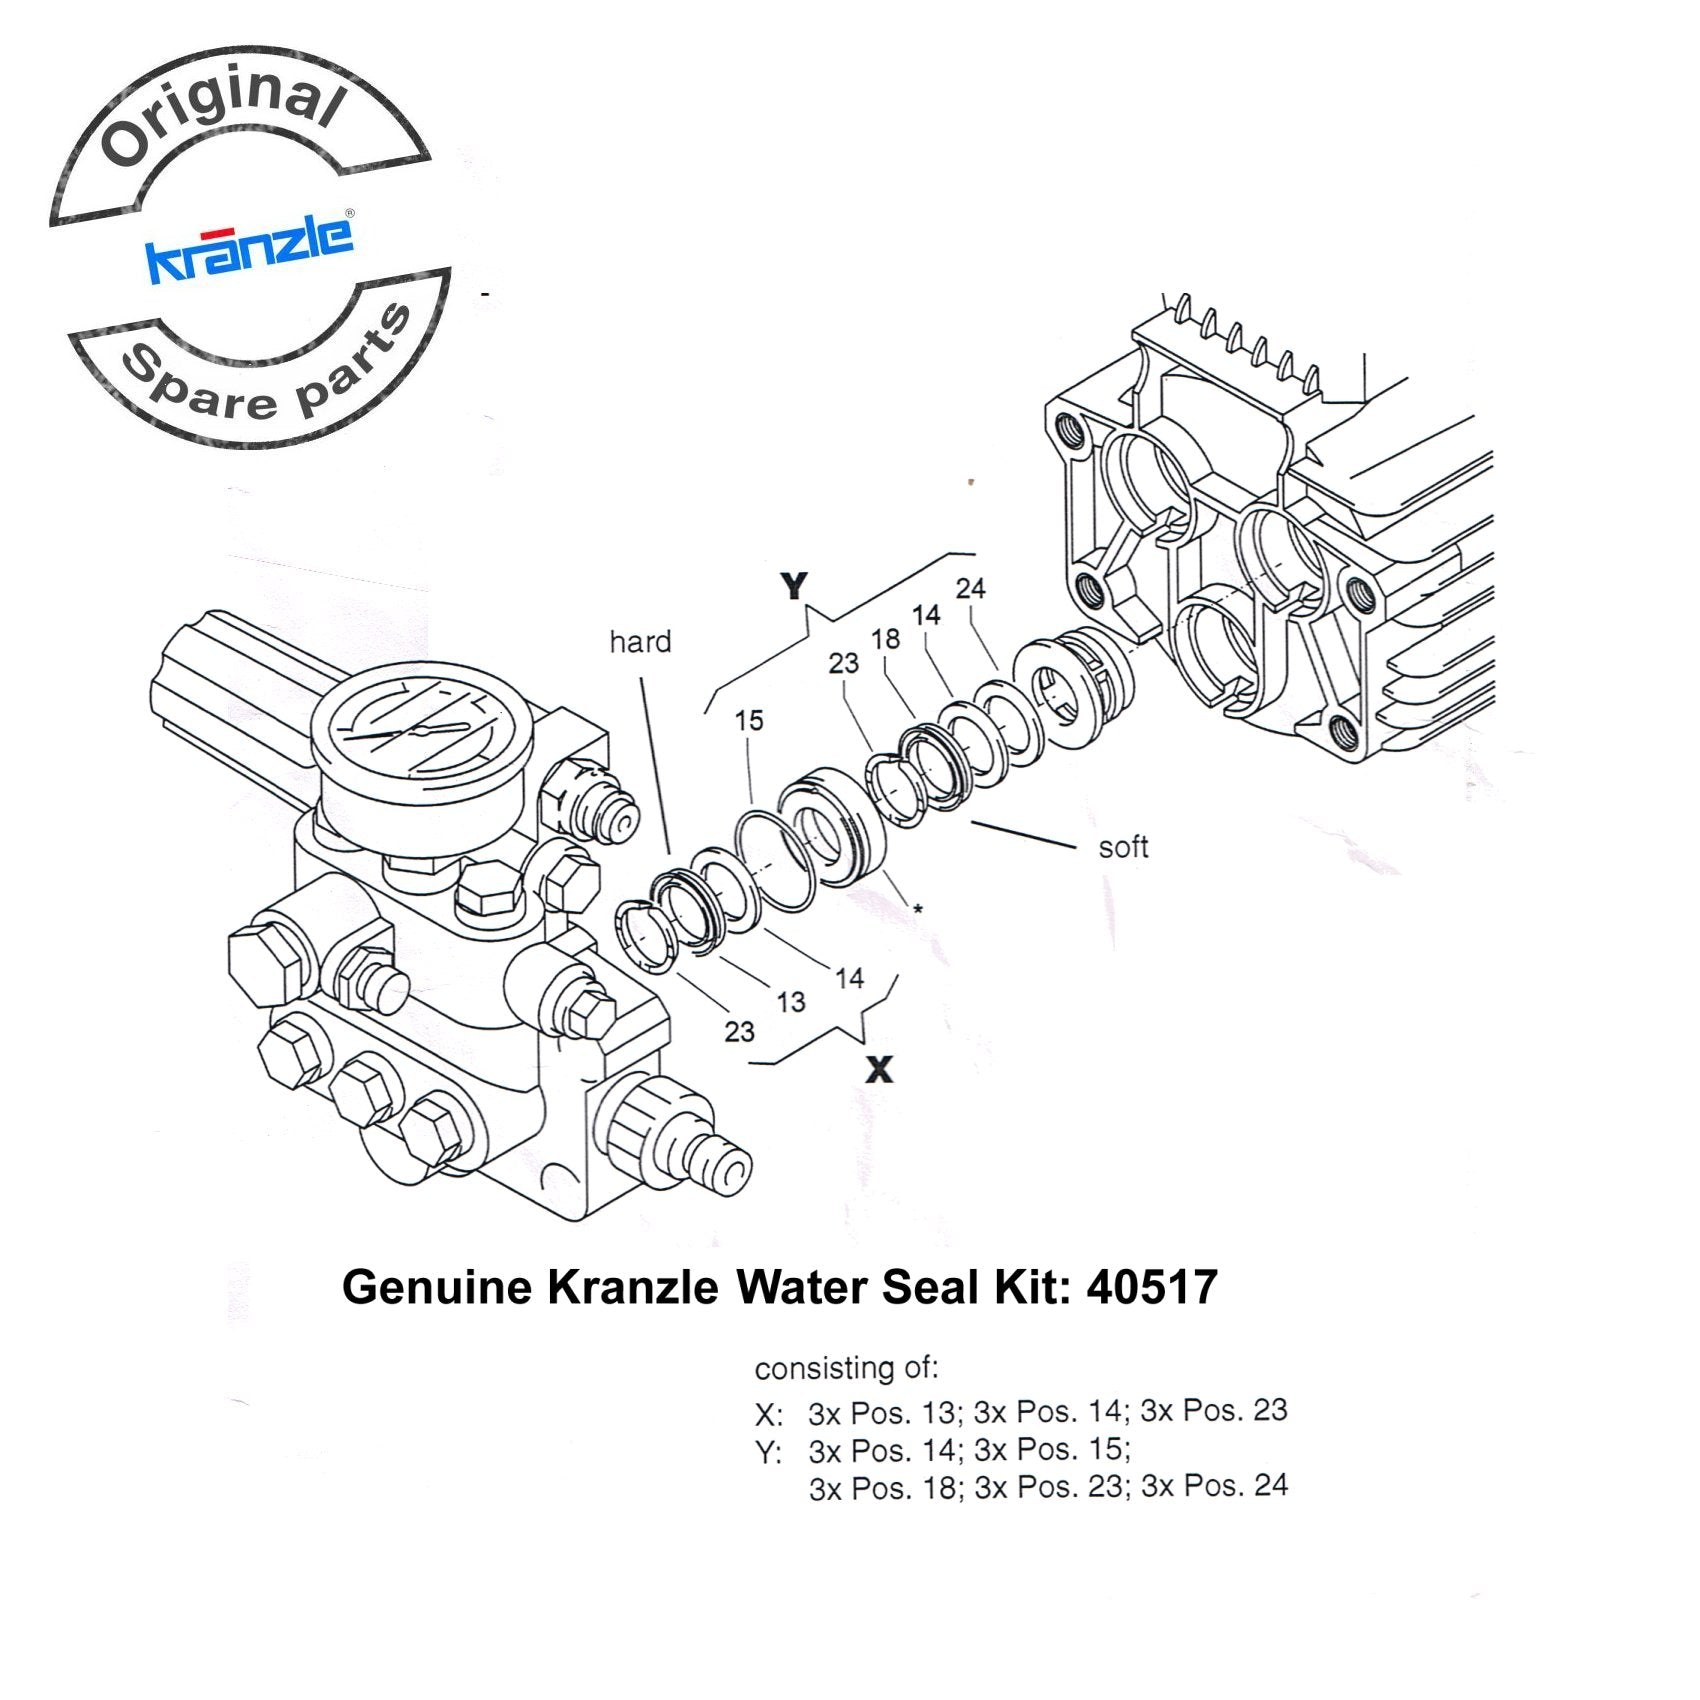 Genuine Kranzle 20mm Water Seal Kit 40517